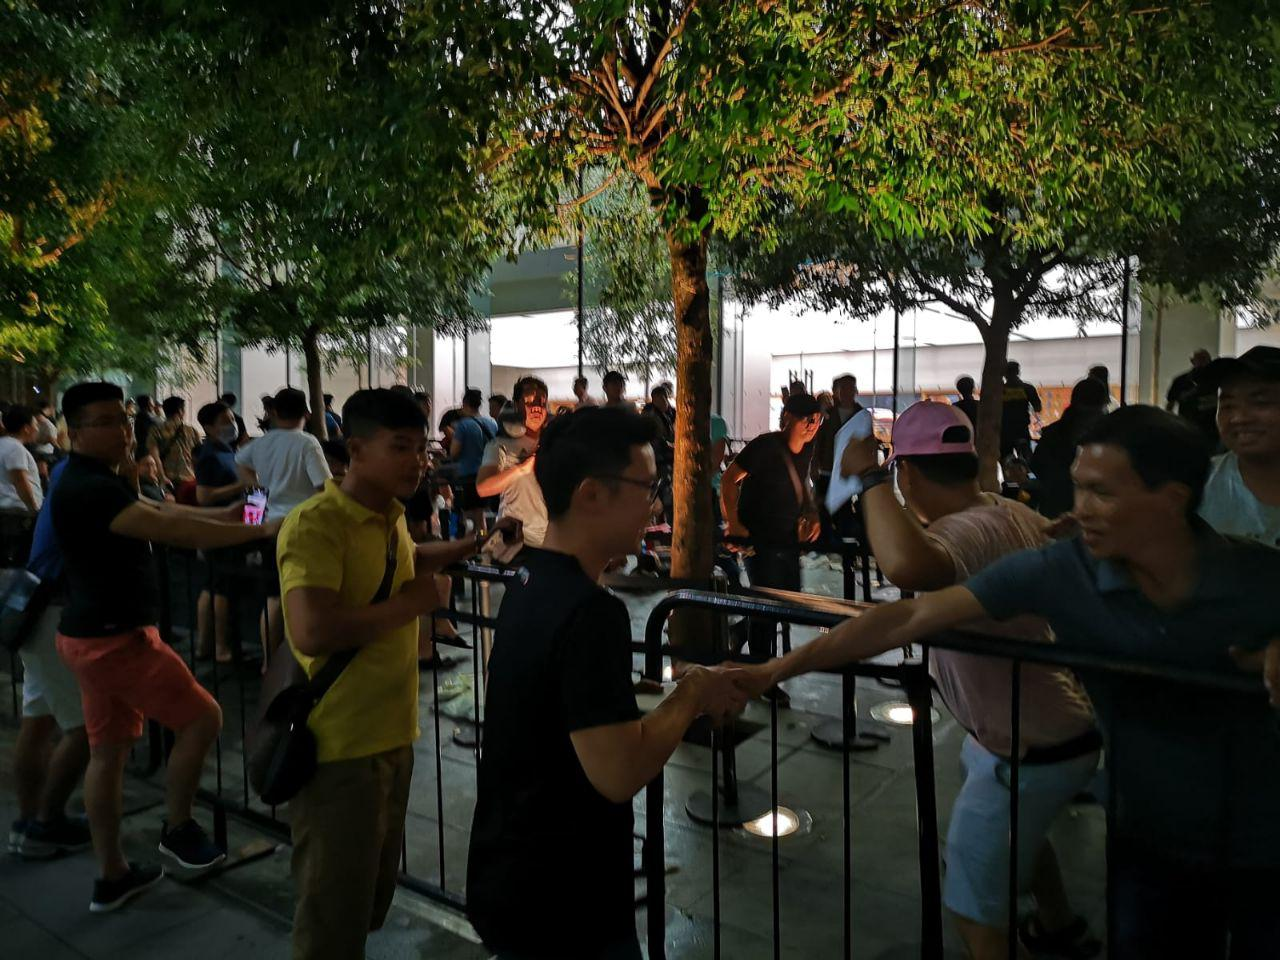 Huawei gifting free power banks to Apple fans outside Apple store